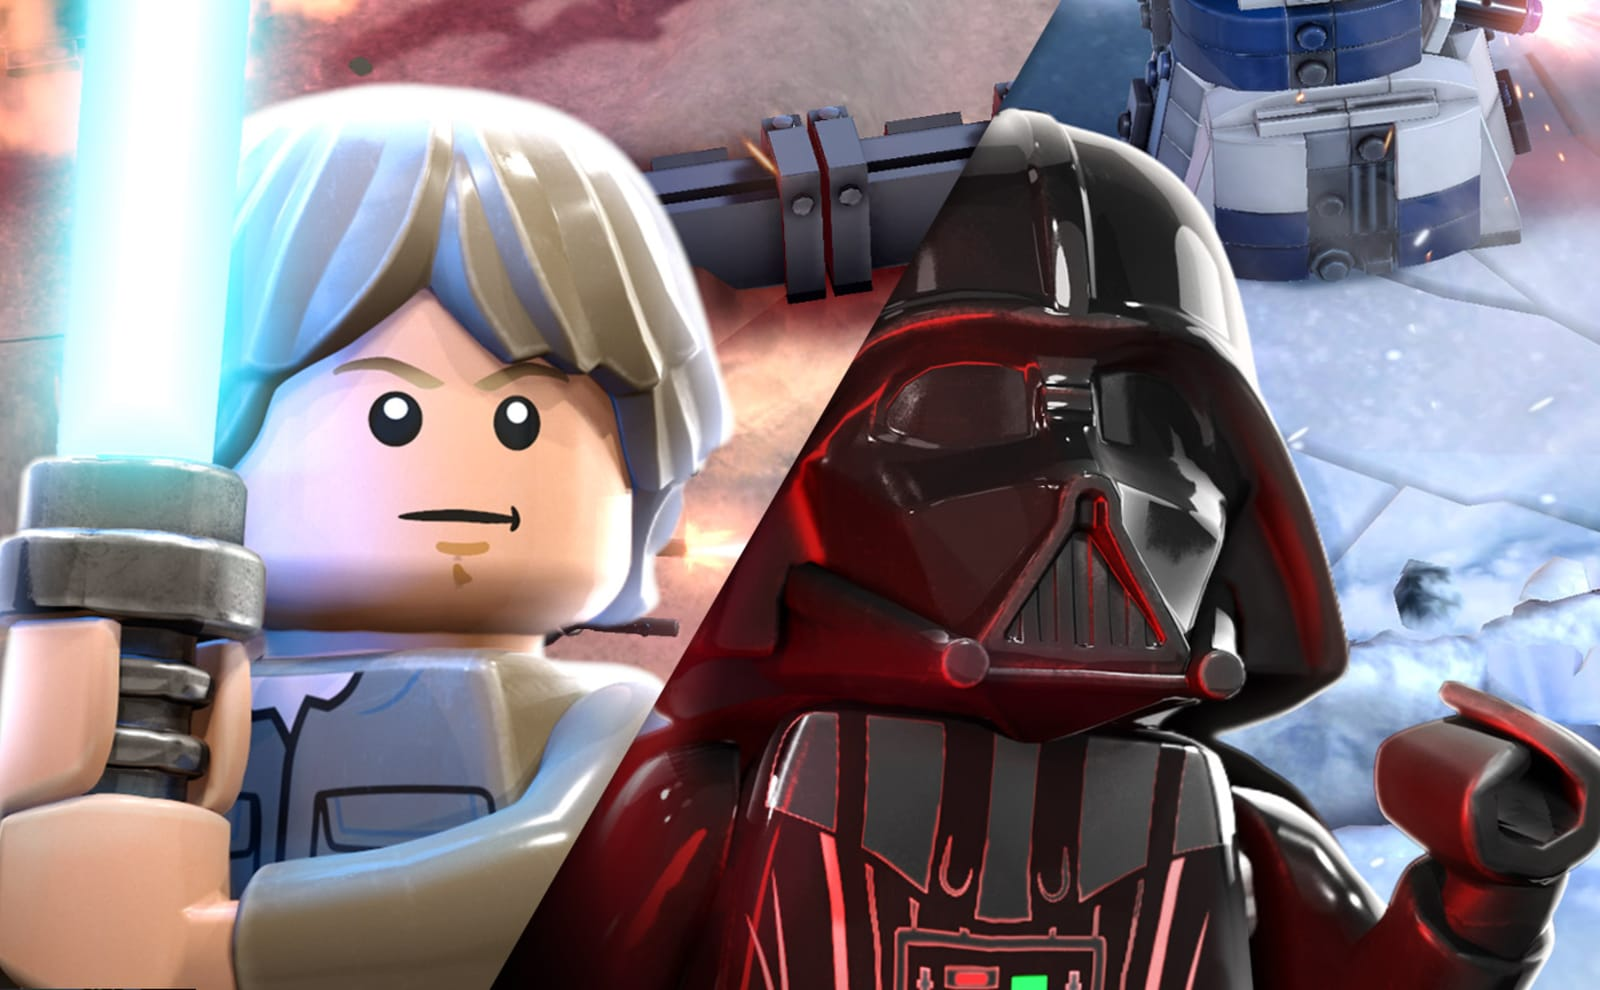 'LEGO Star Wars Battles' is a competitive strategy game for mobile